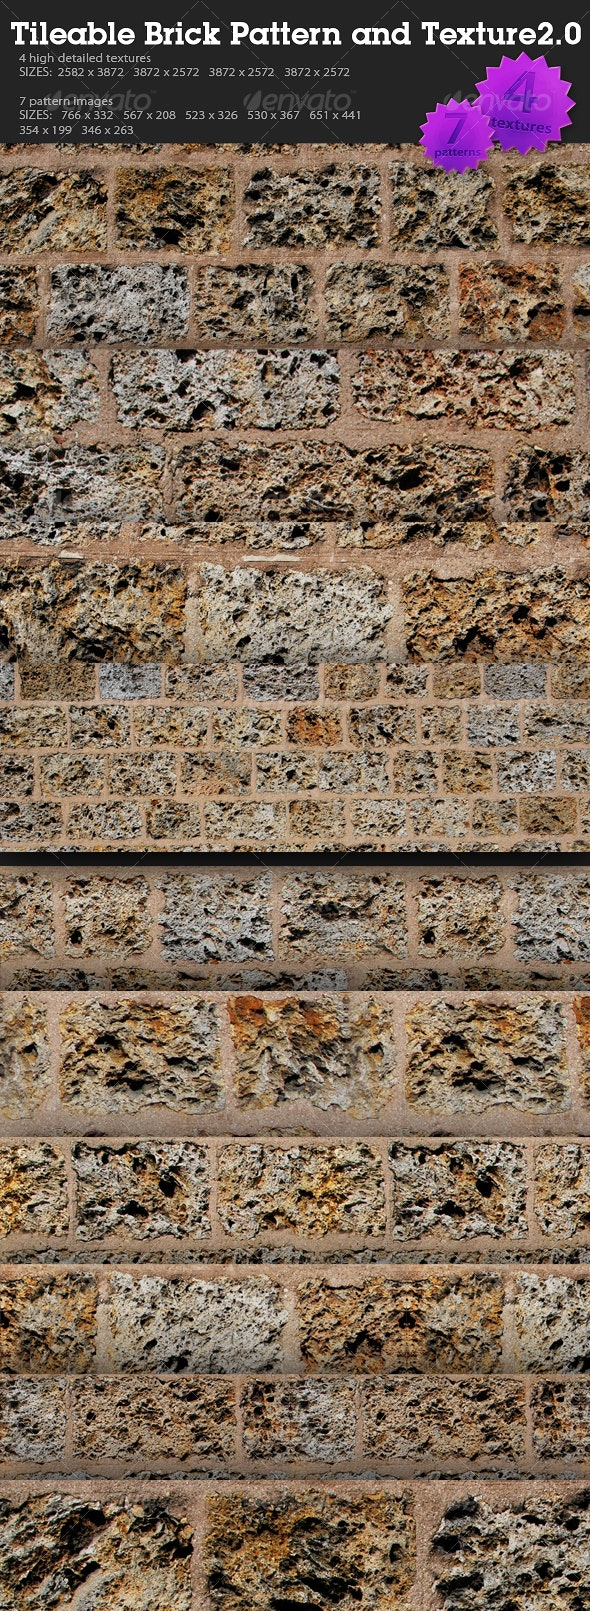 Tileable Brick Pattern and Texture 2.0 - Stone Textures